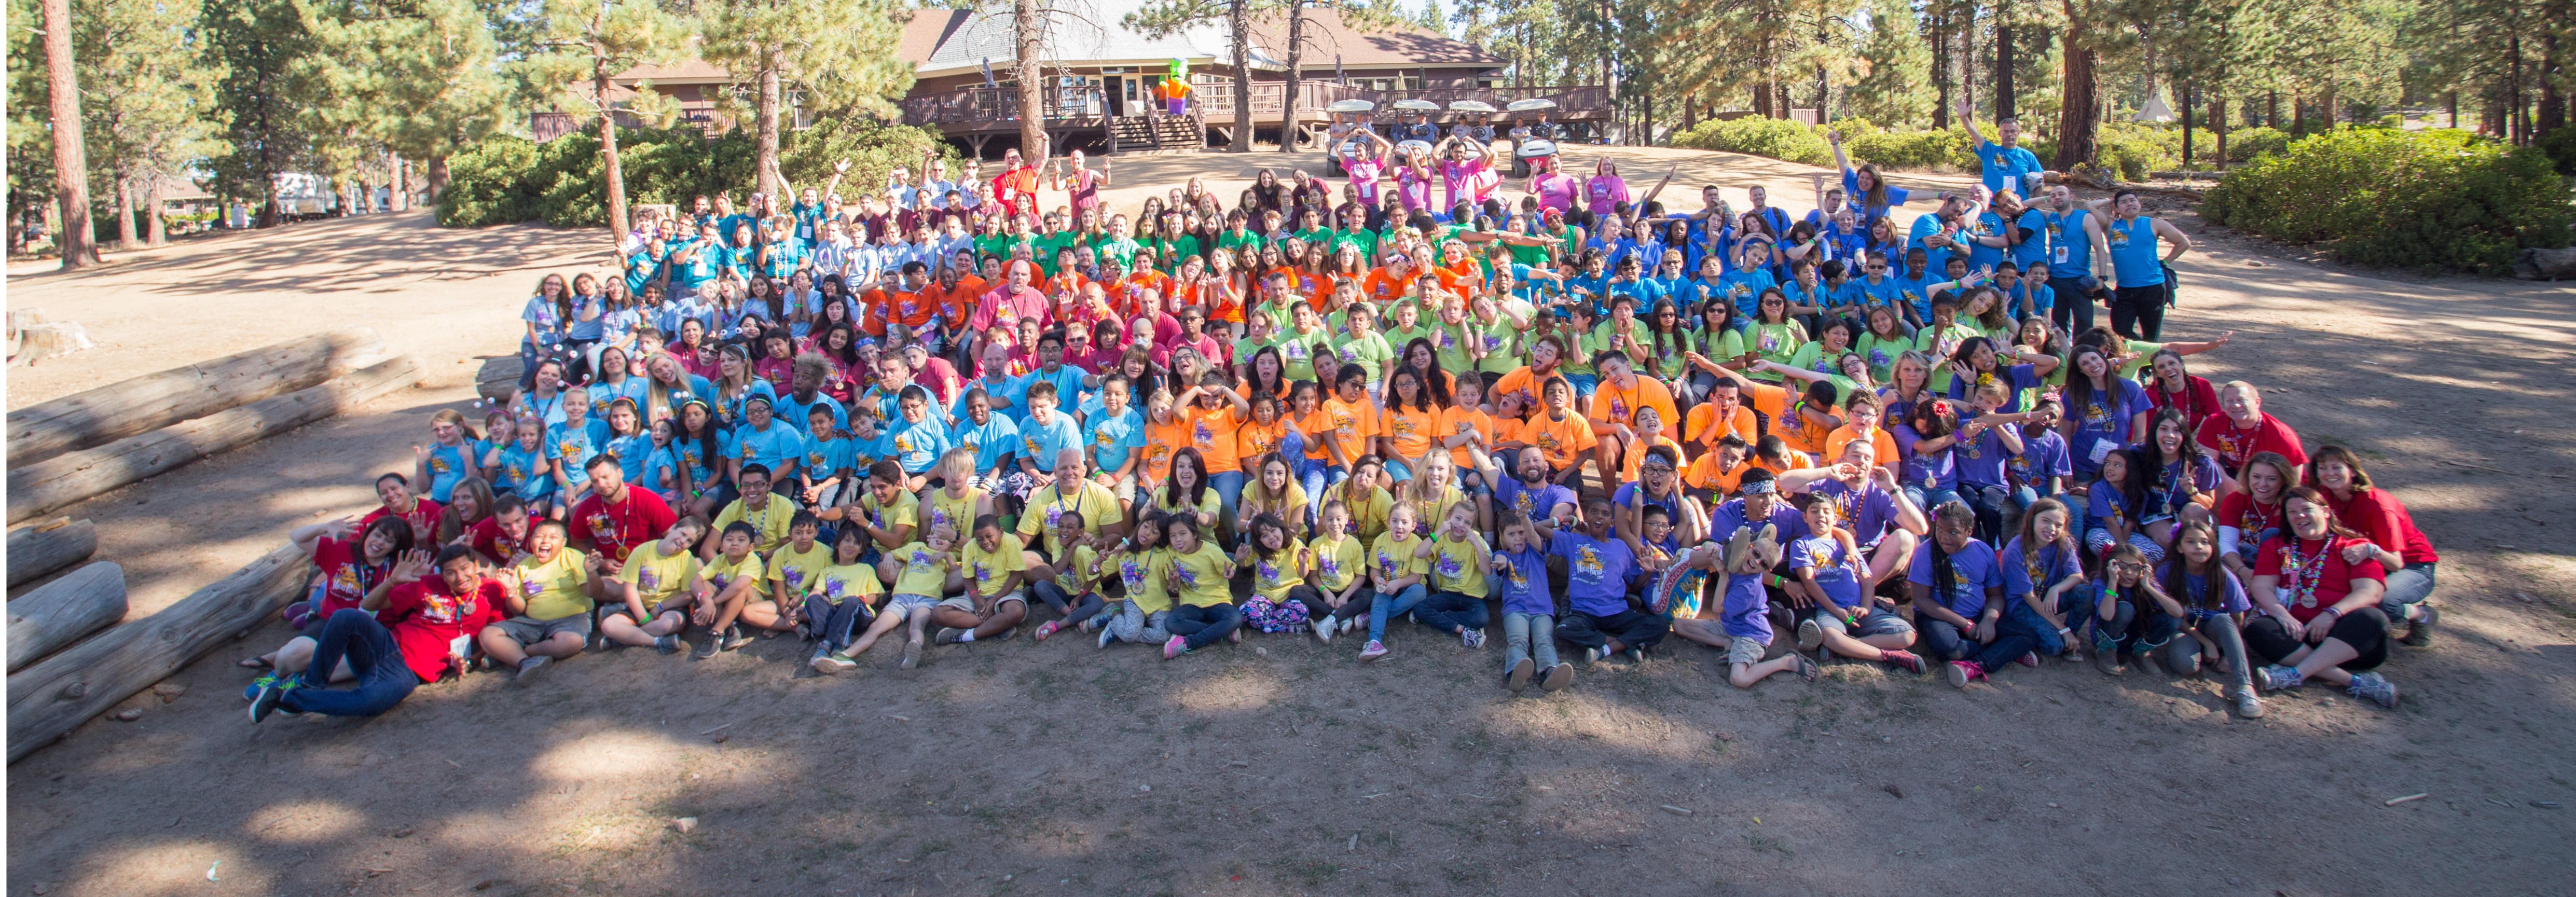 Camp Independent Firefly Volunteers Wanted